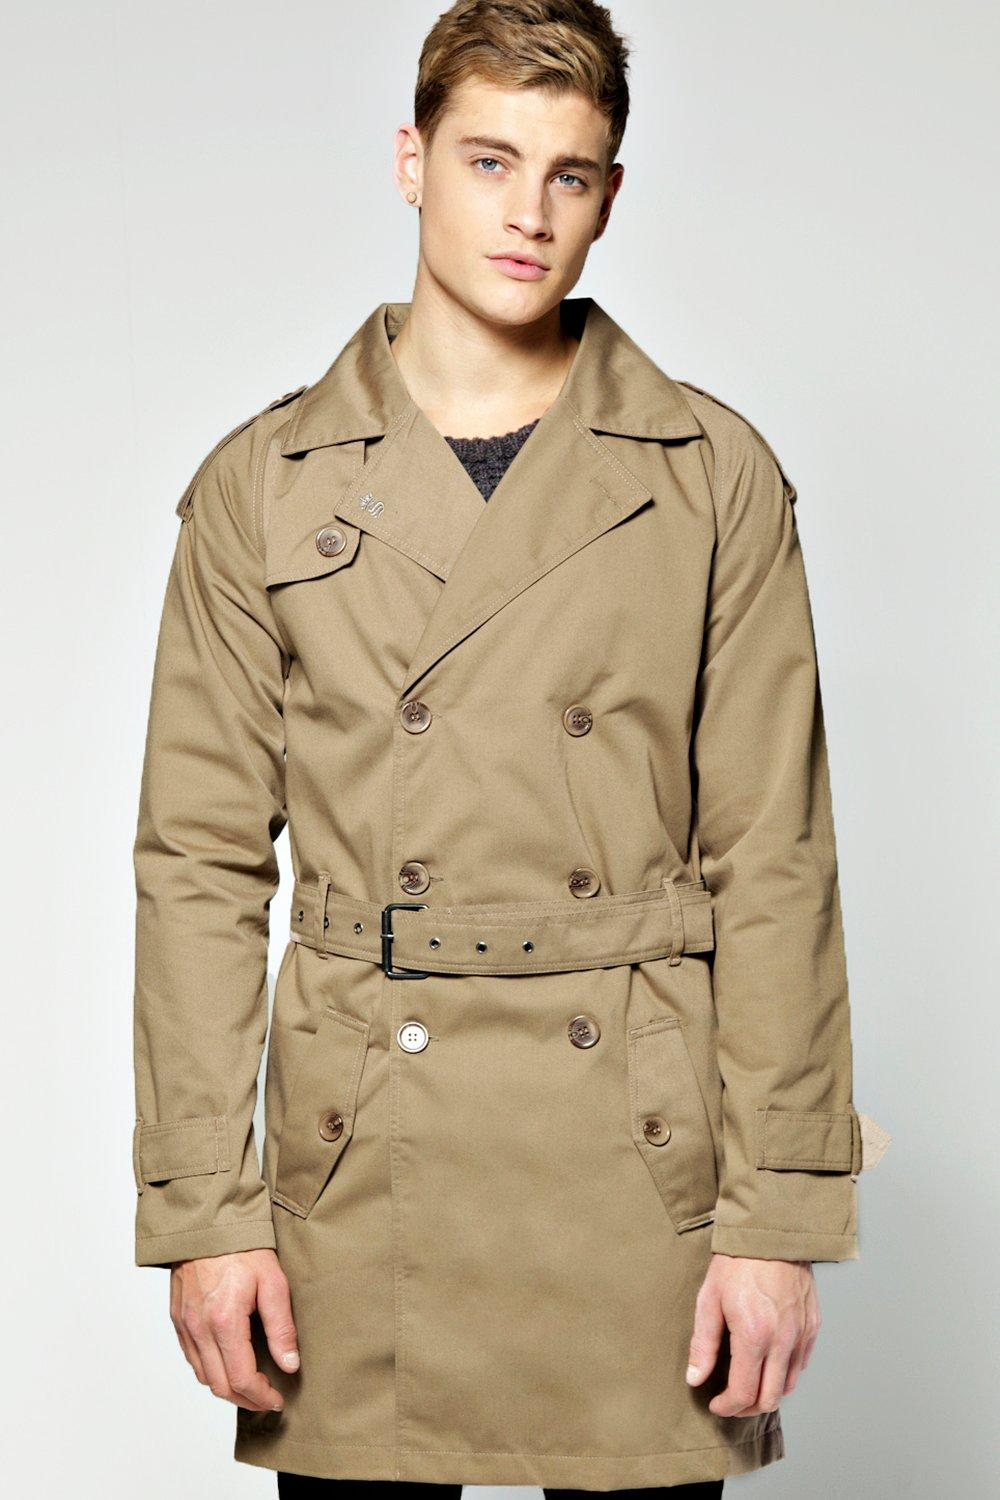 Image of boohoo 3/4 Double Breasted Belted Rain Mac - stone